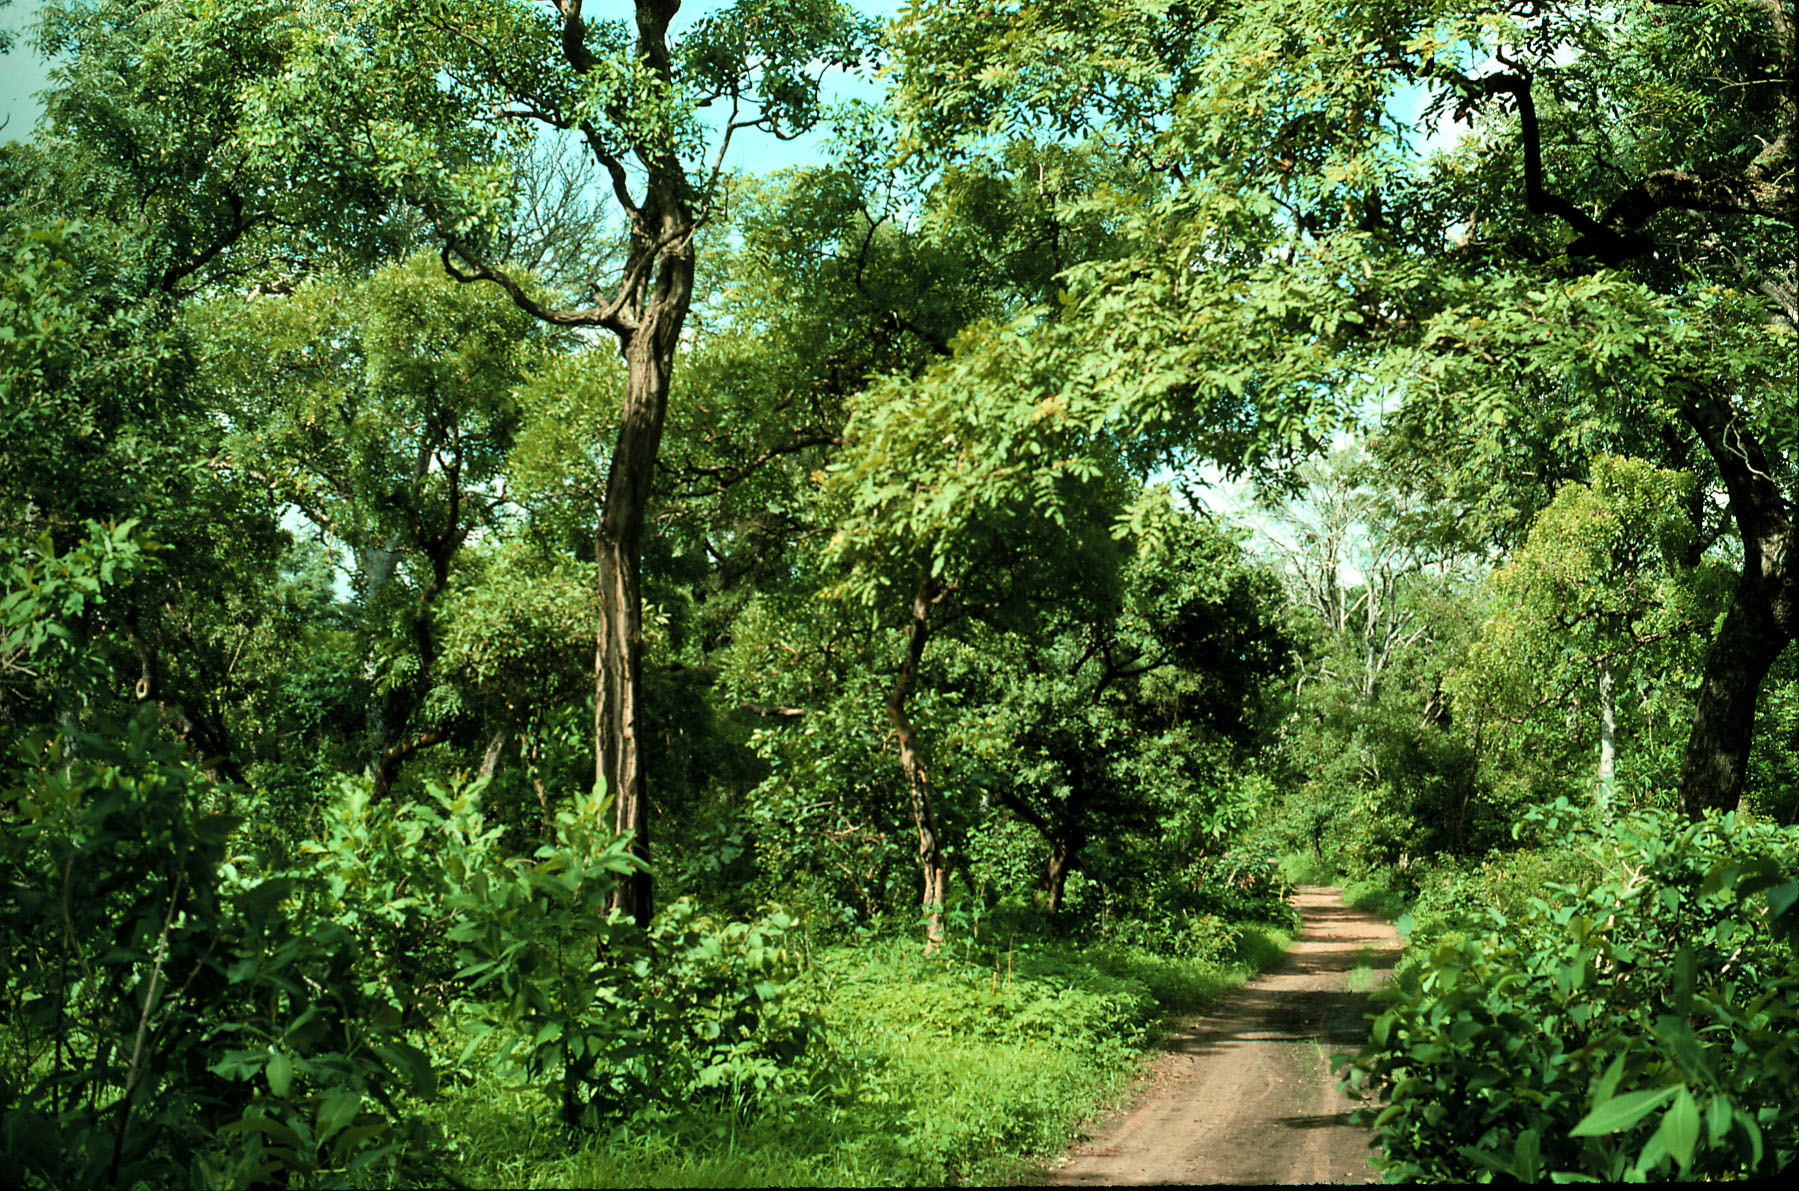 Wet season wooded in south-central Senegal